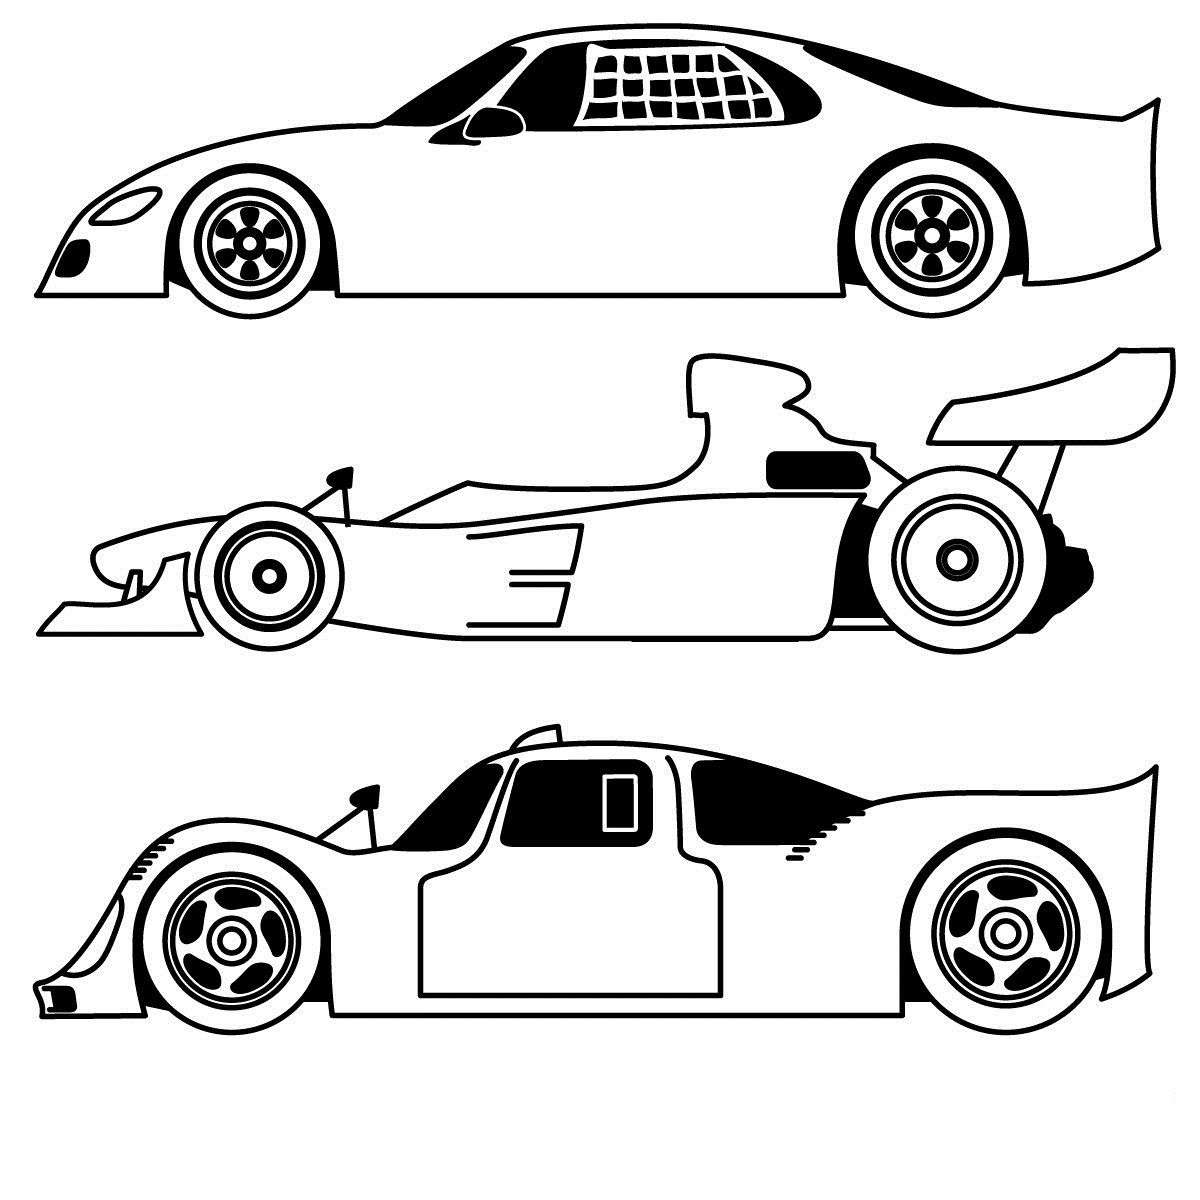 Race Car Coloring Pages Sports coloring pages, Cars